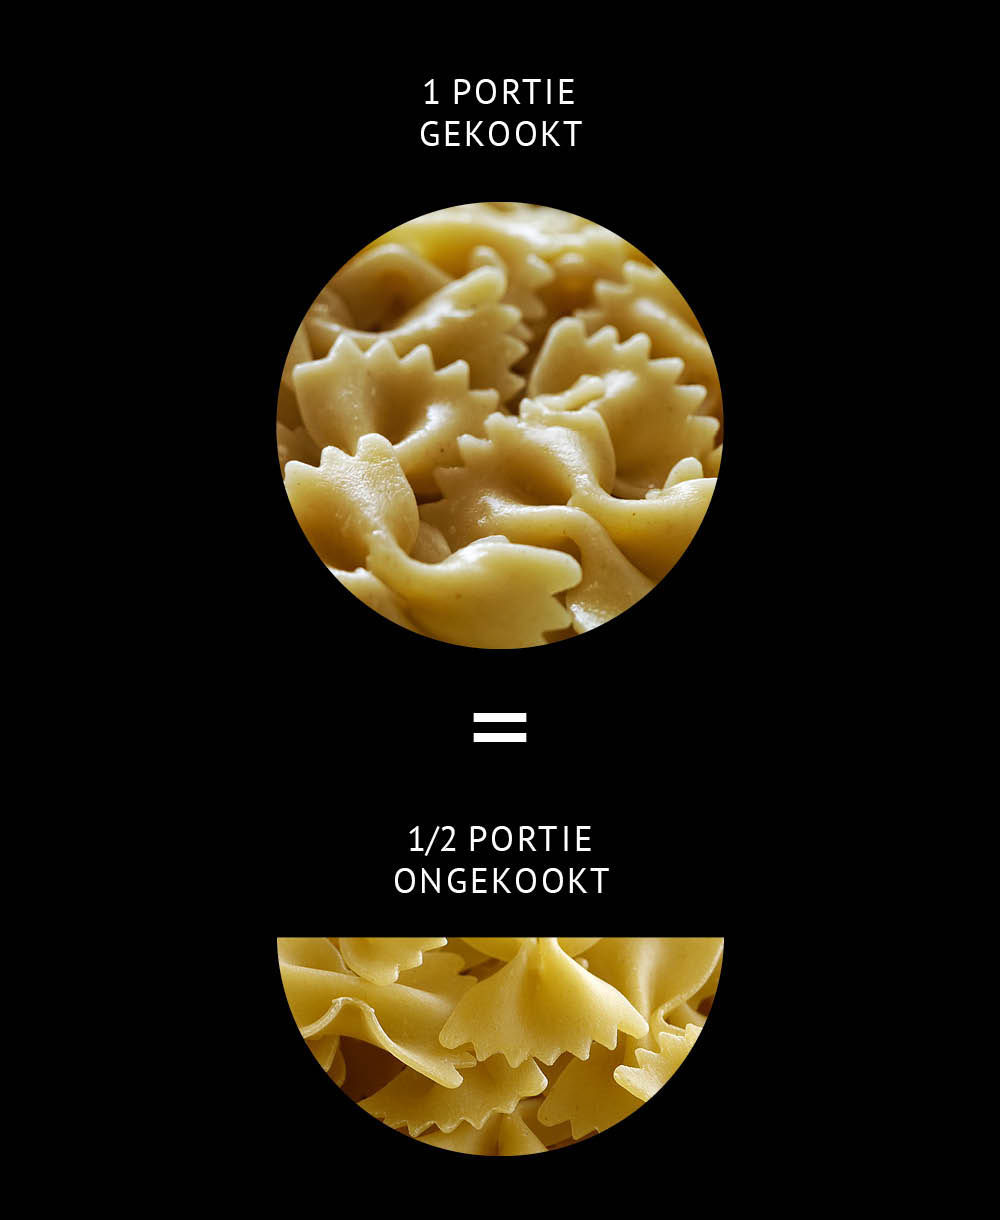 Empty the Fridge - Pasta gekookt vs ongekookt